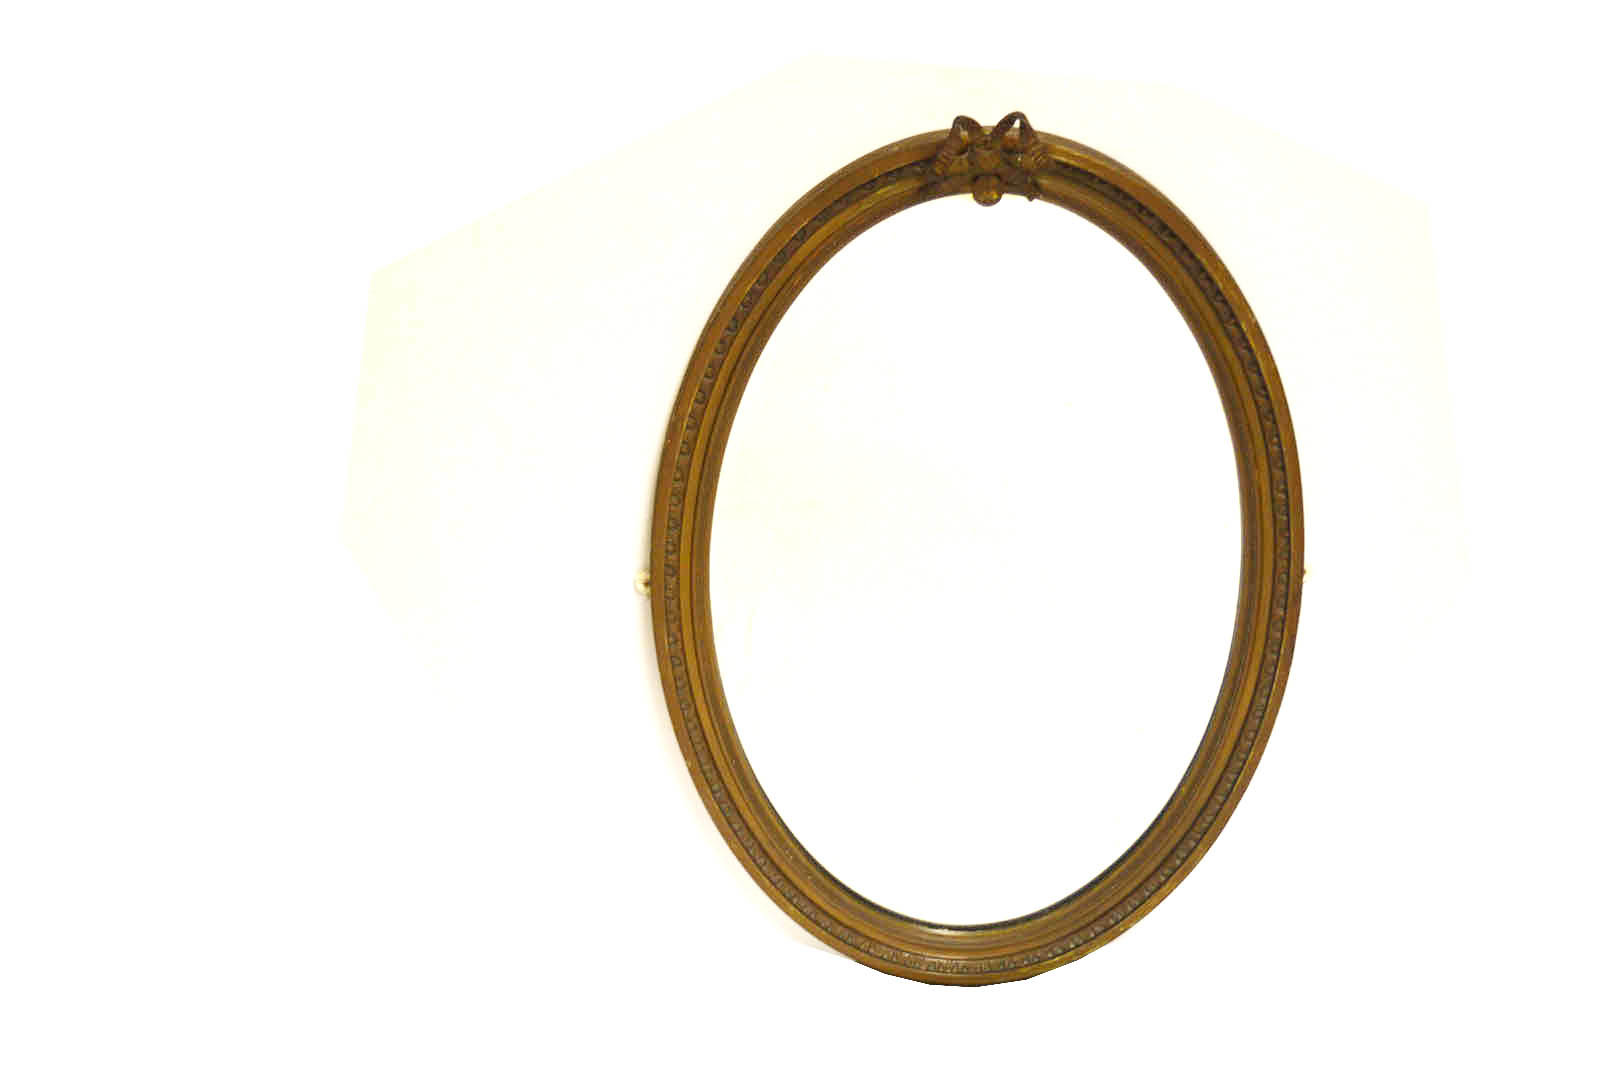 Lot 51 - An Oval Gilt Framed Bevelled Glass Wall Mirror, Ribbon Top